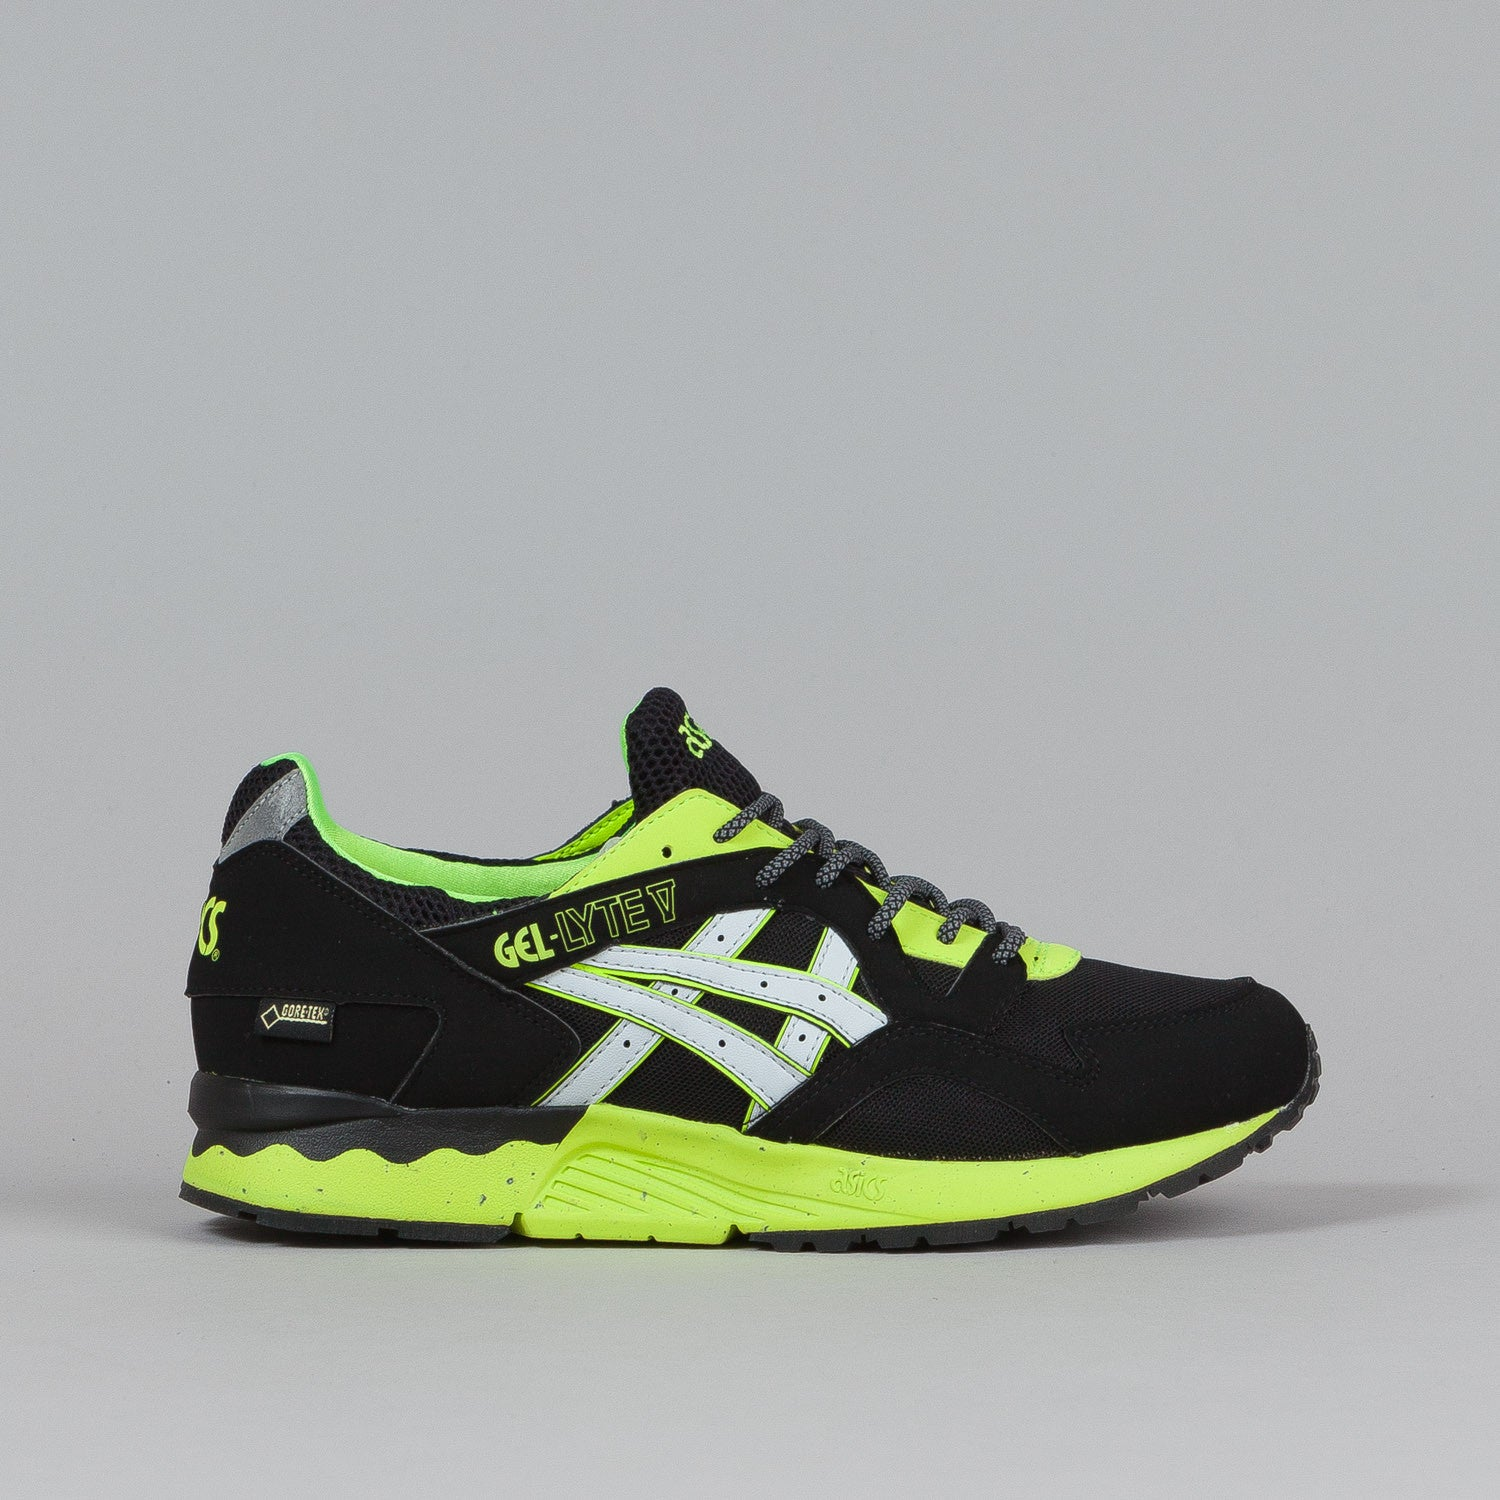 Asics Gel Lyte V Shoes Black / Soft Grey (Gore Tex)